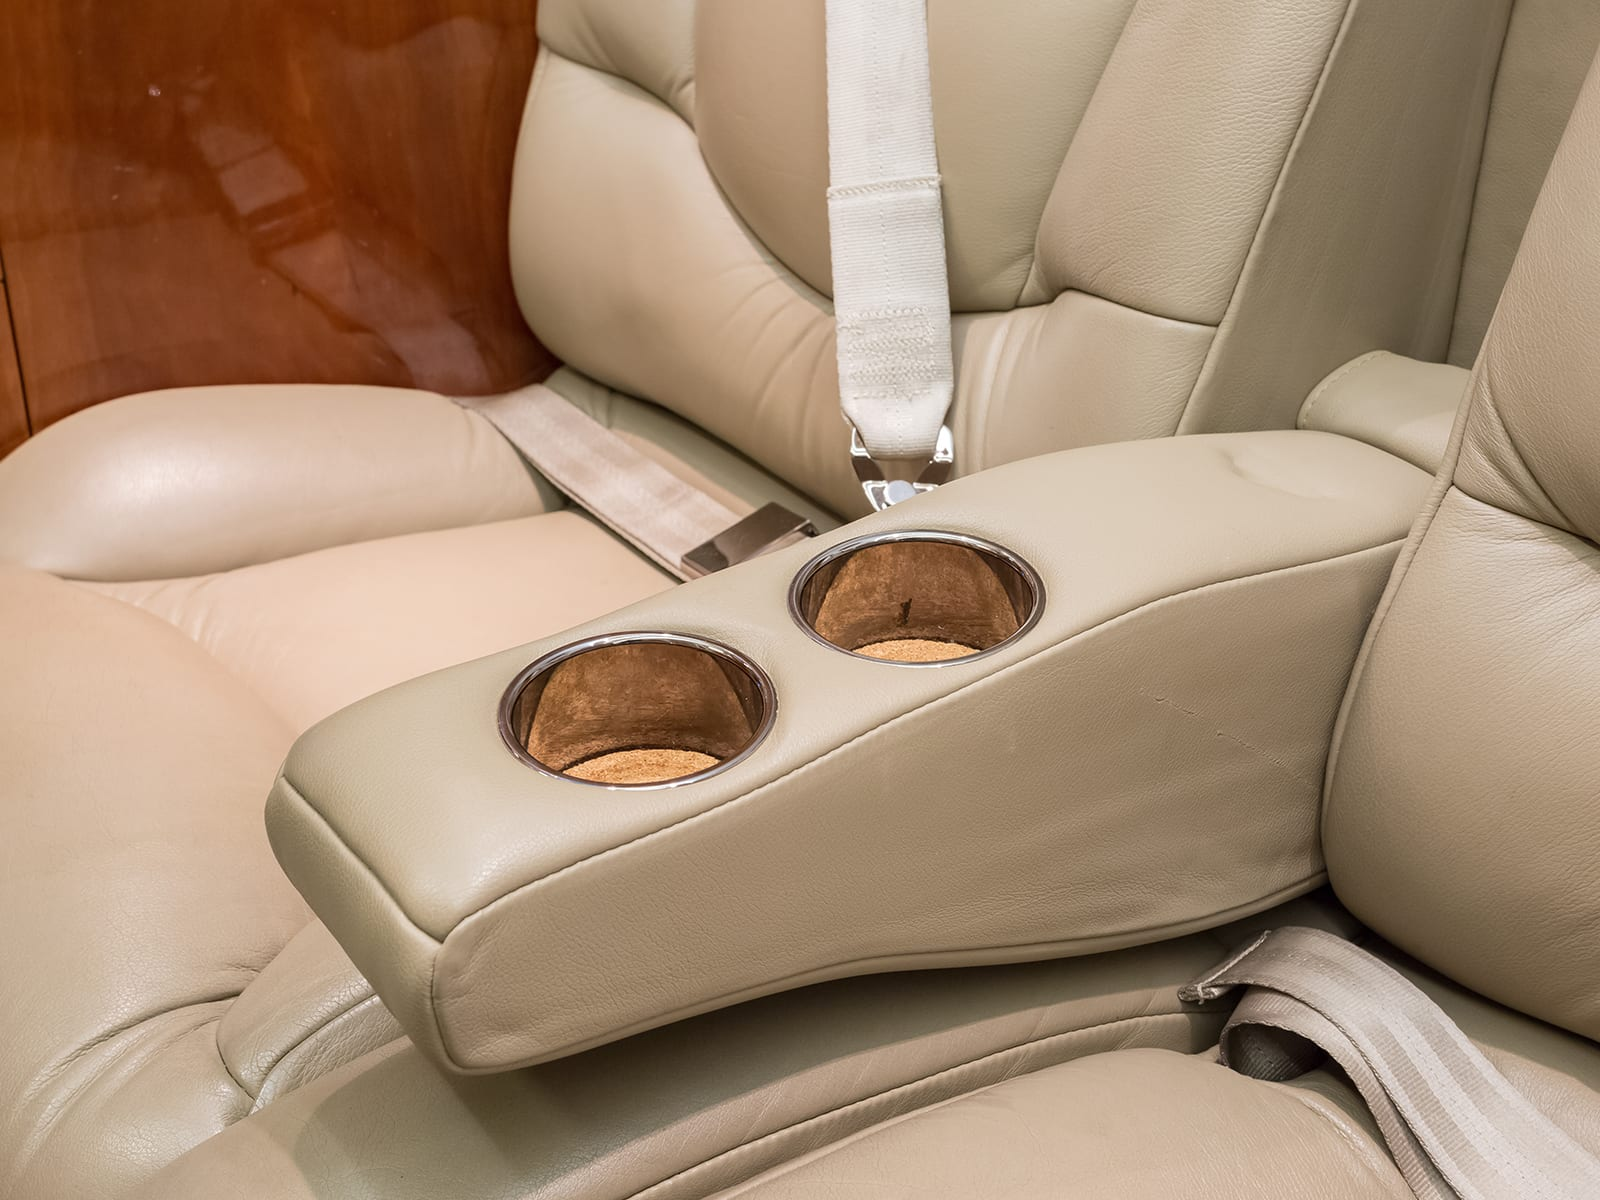 a cup holder and armrest in a Priority Jet aircraft